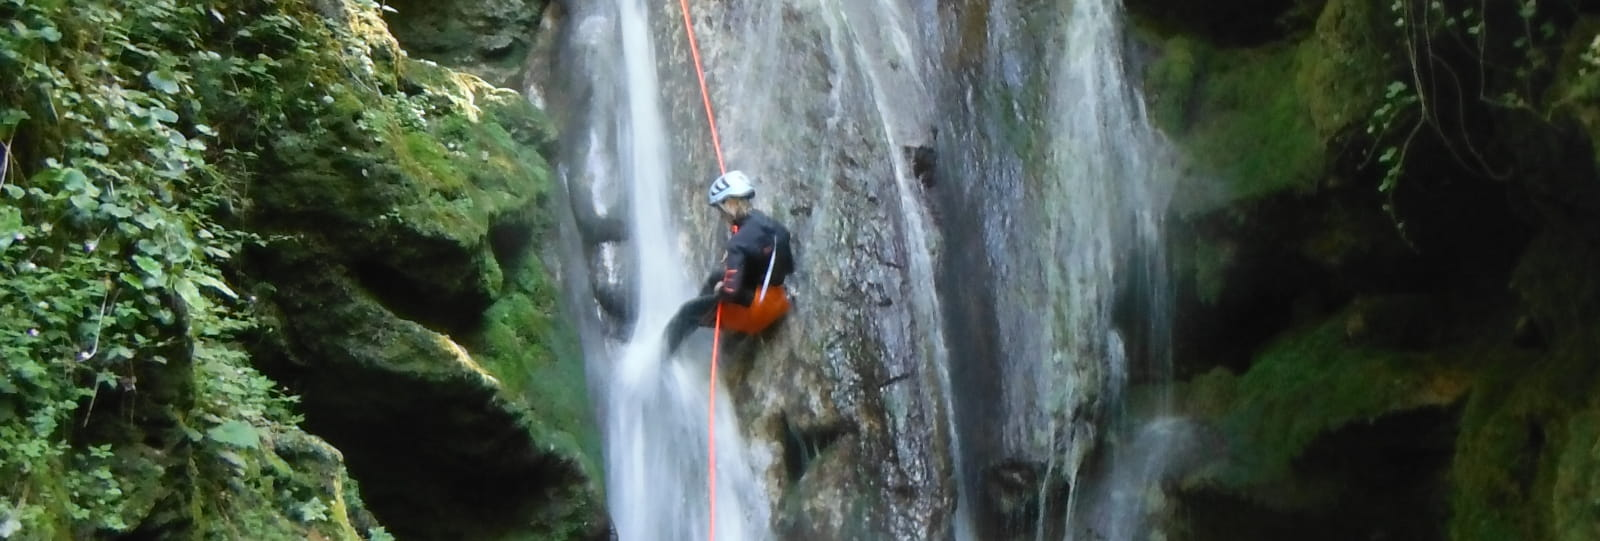 Canyoning and Aqua Trekking with EVA Location